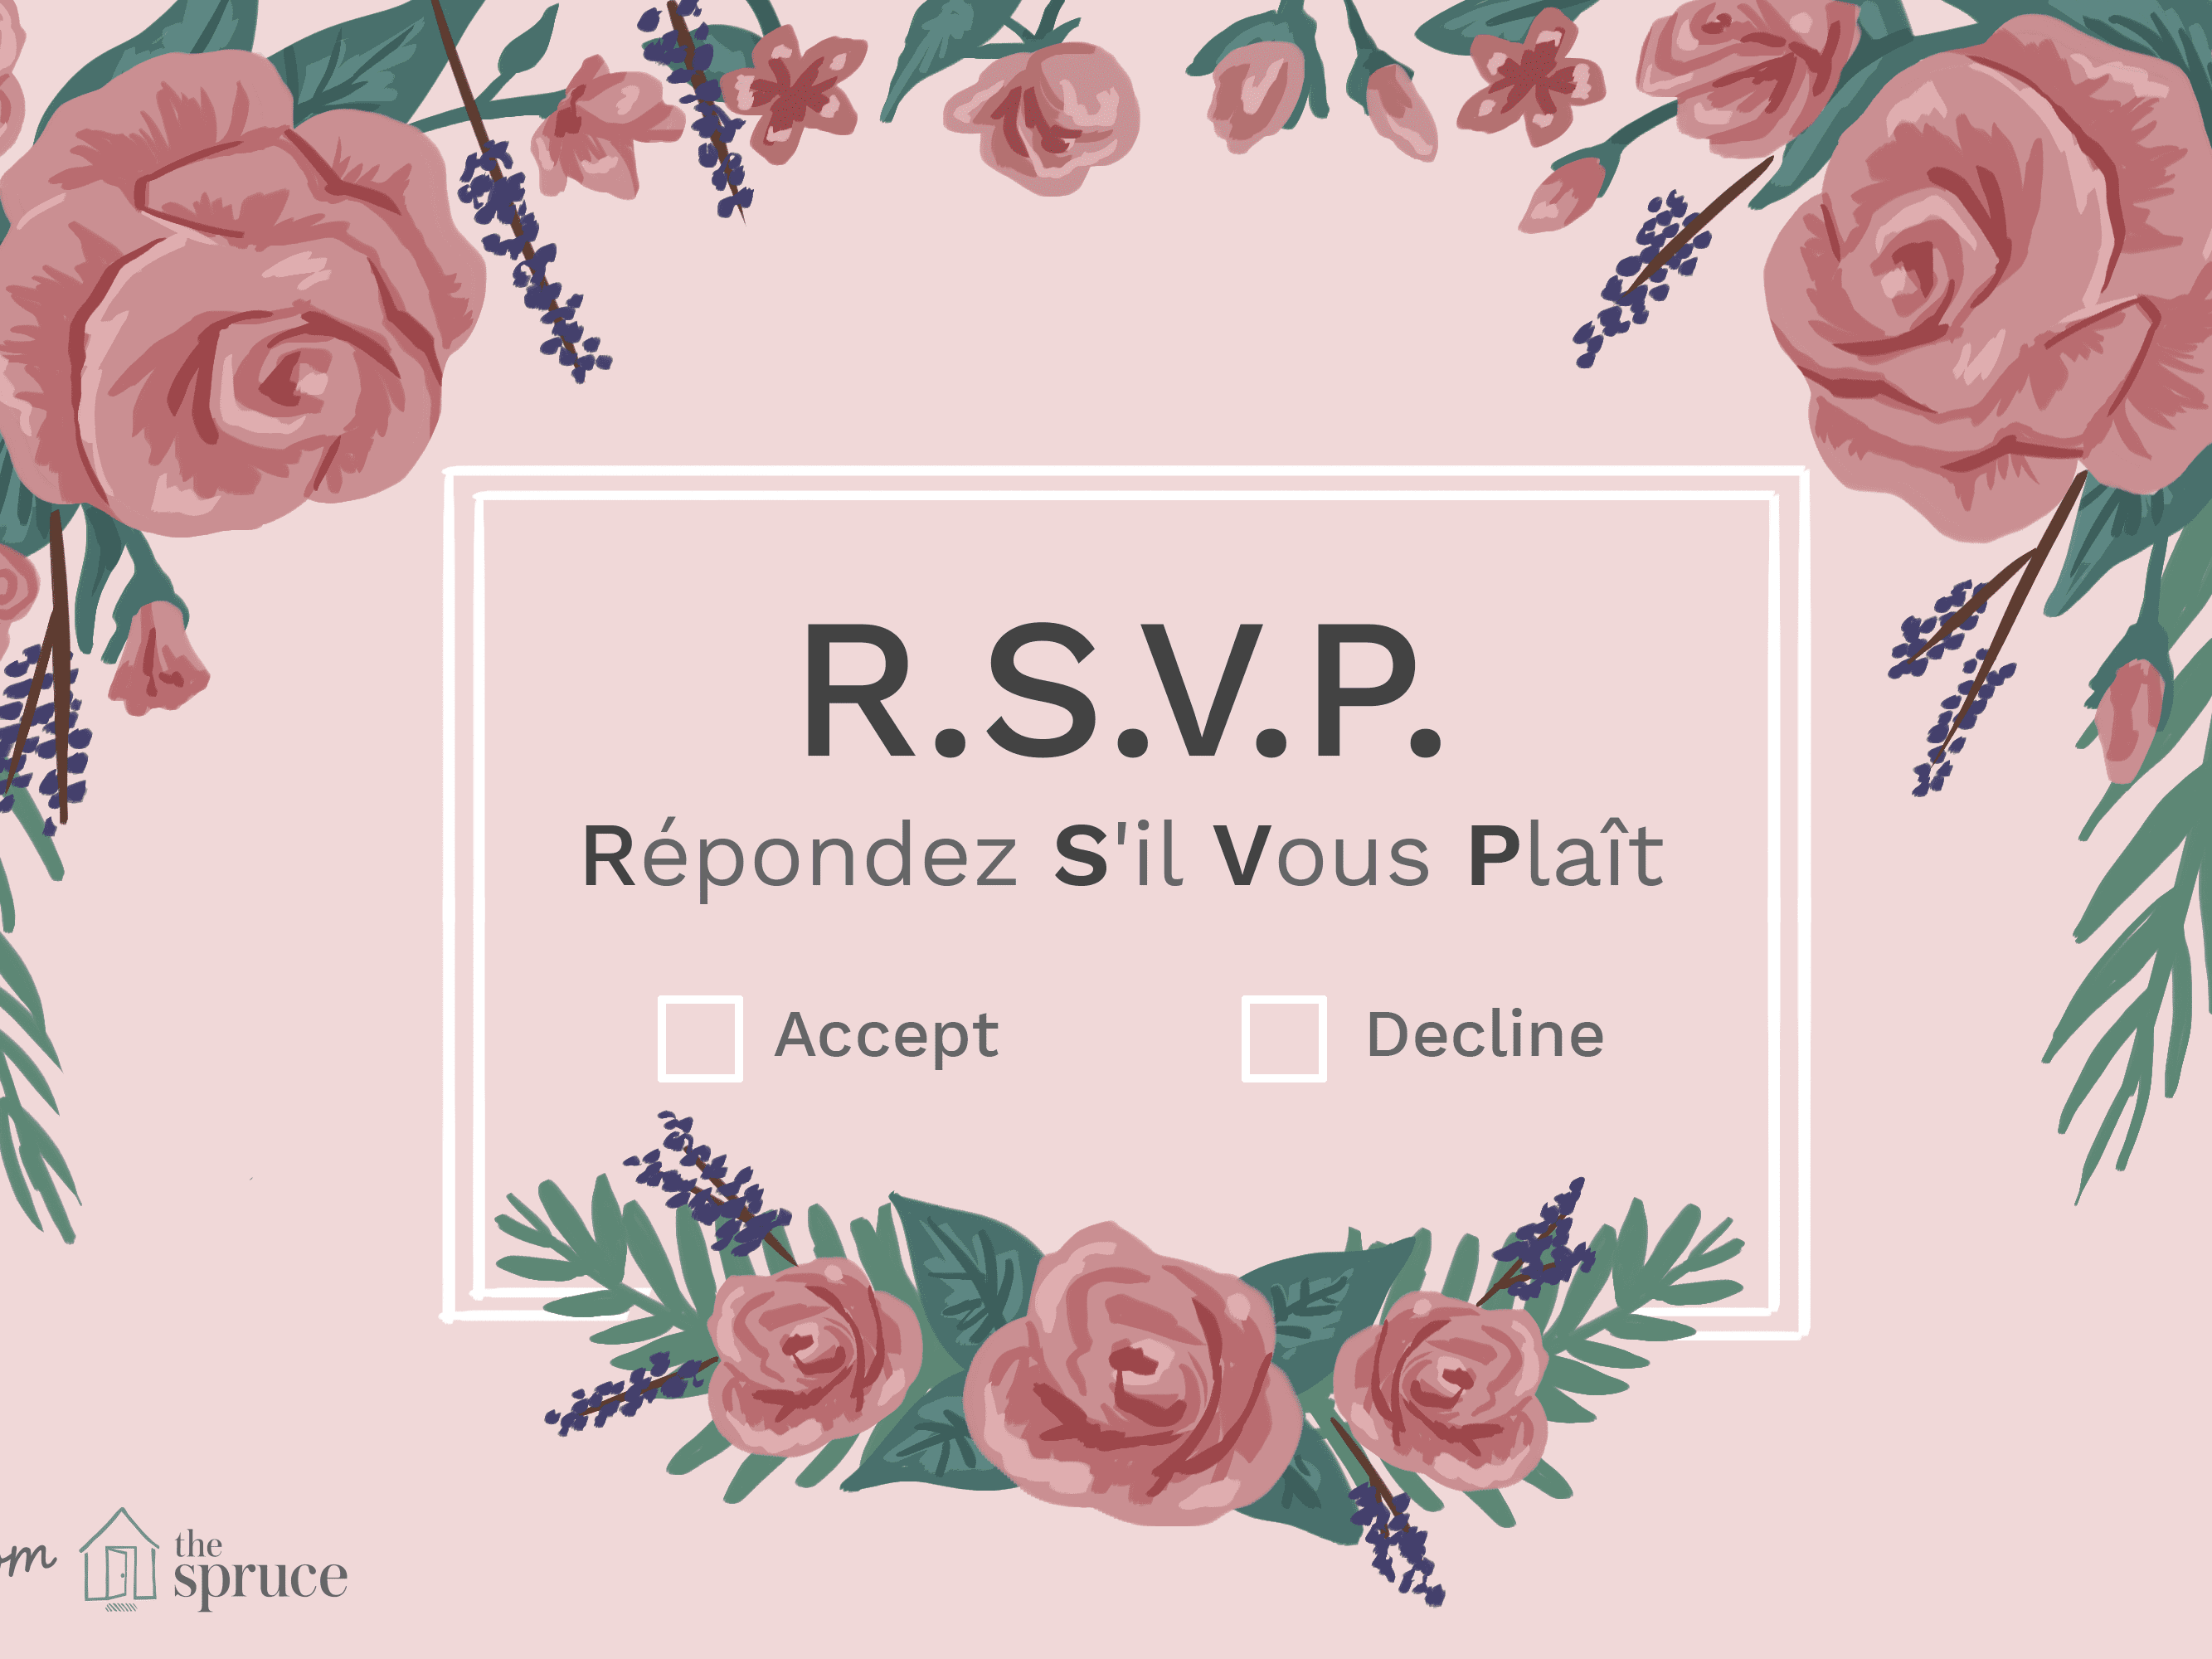 What Does RSVP Mean on an Invitation?